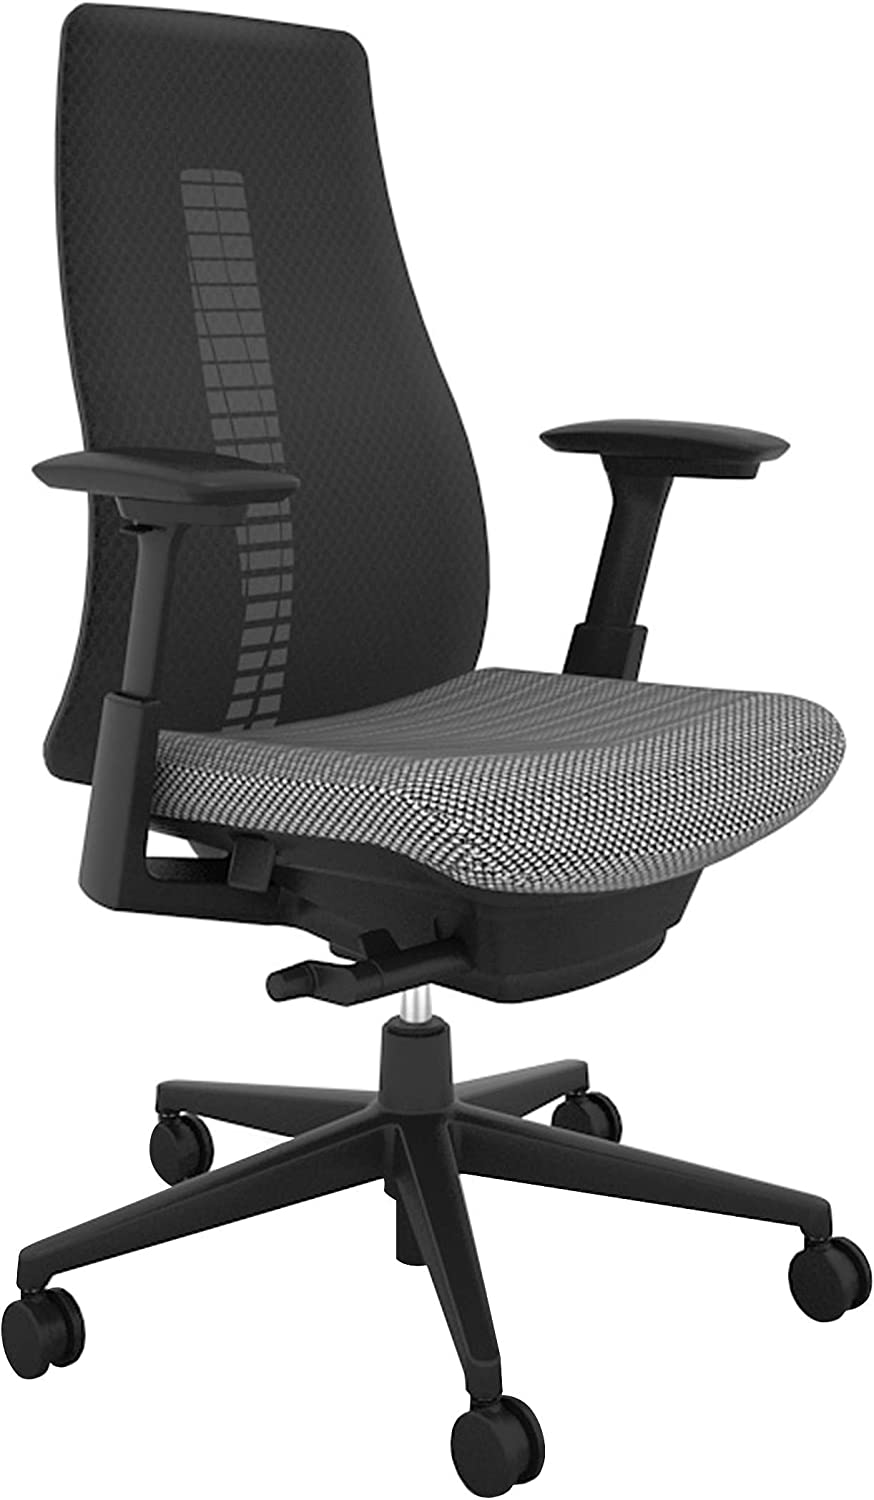 Haworth Fern High Performance Office Chair with Ergonomic Innovations and Flexible Mesh Back, Coal